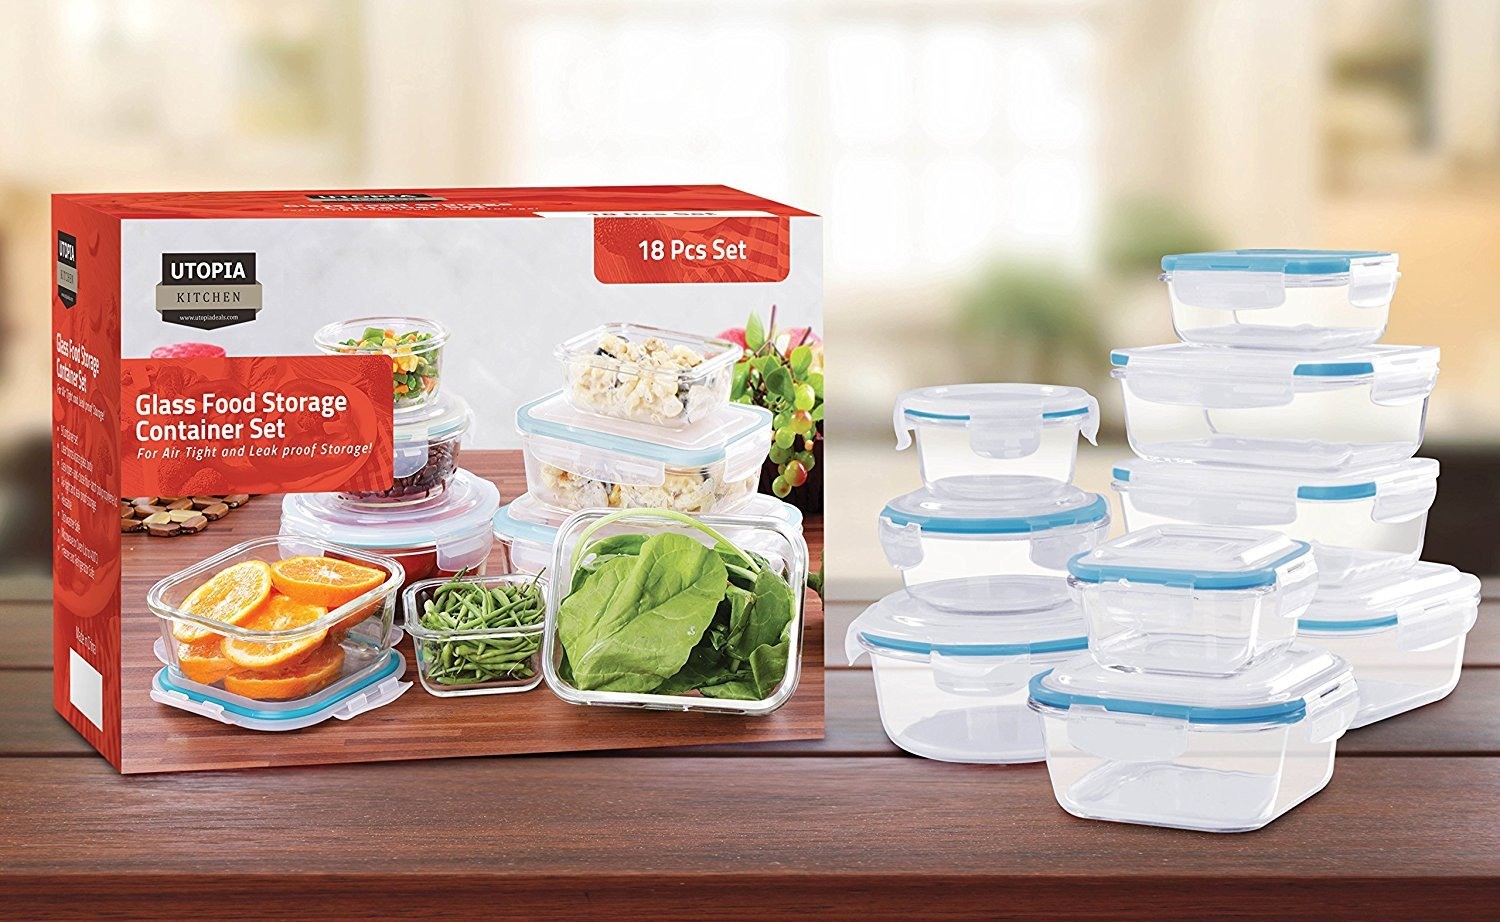 Genial Amazon.com: Utopia Kitchen Glass Food Storage Container Set   18 Pieces (9  Containers + 9 Lids) Transparent Lids   BPA Free   For Home Kitchen Or ...